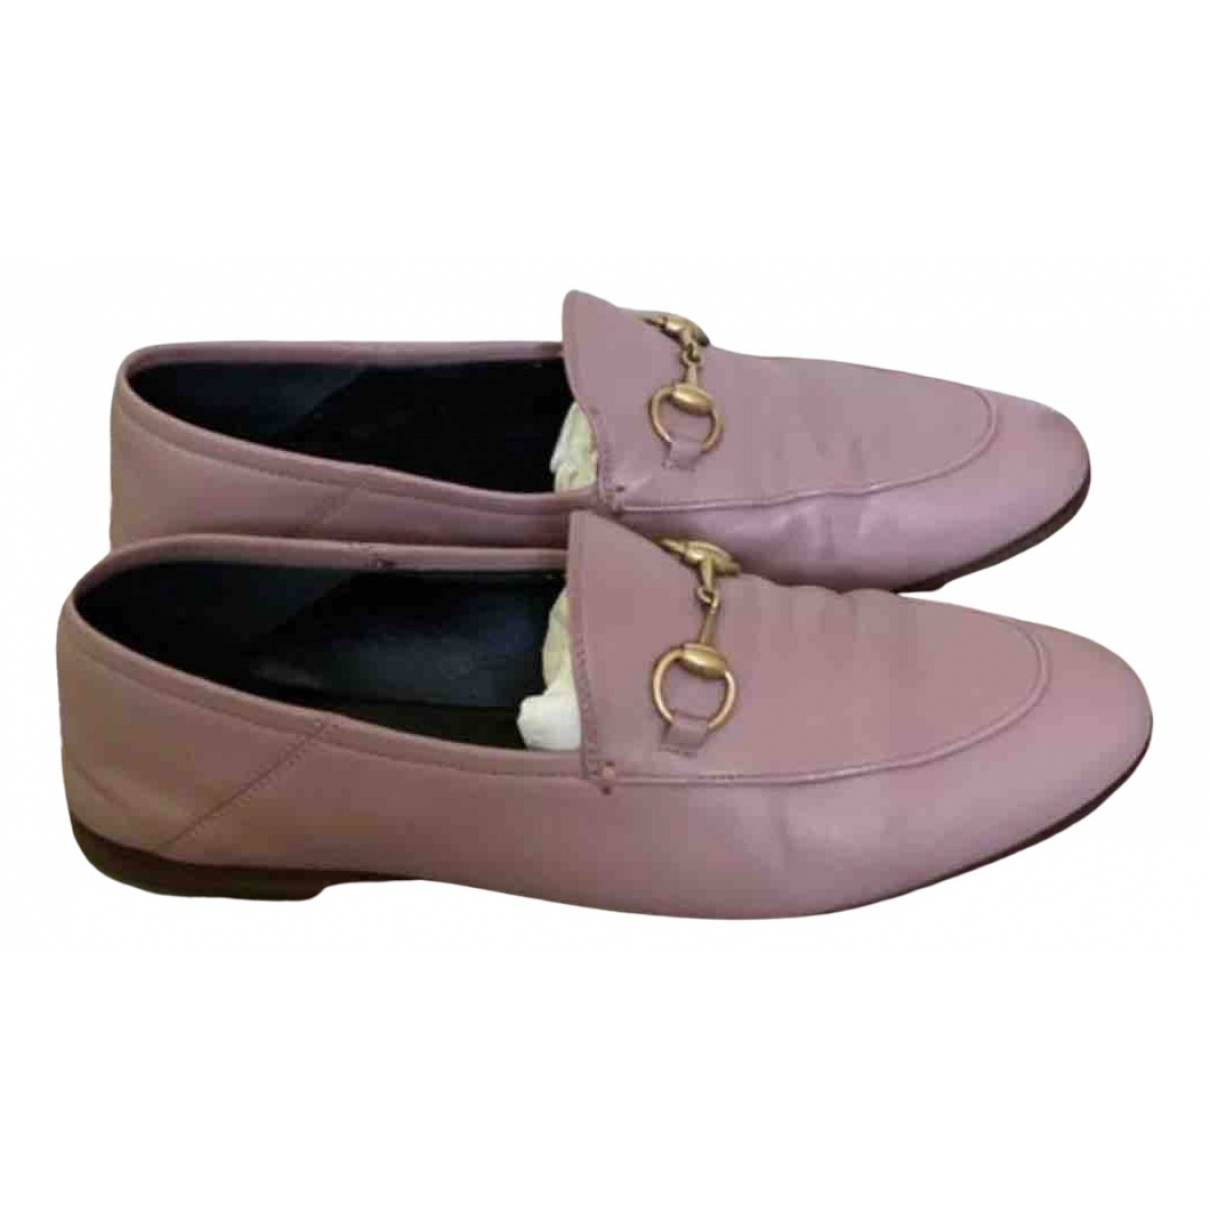 Gucci Brixton Pink Leather Flats for Women 37 EU